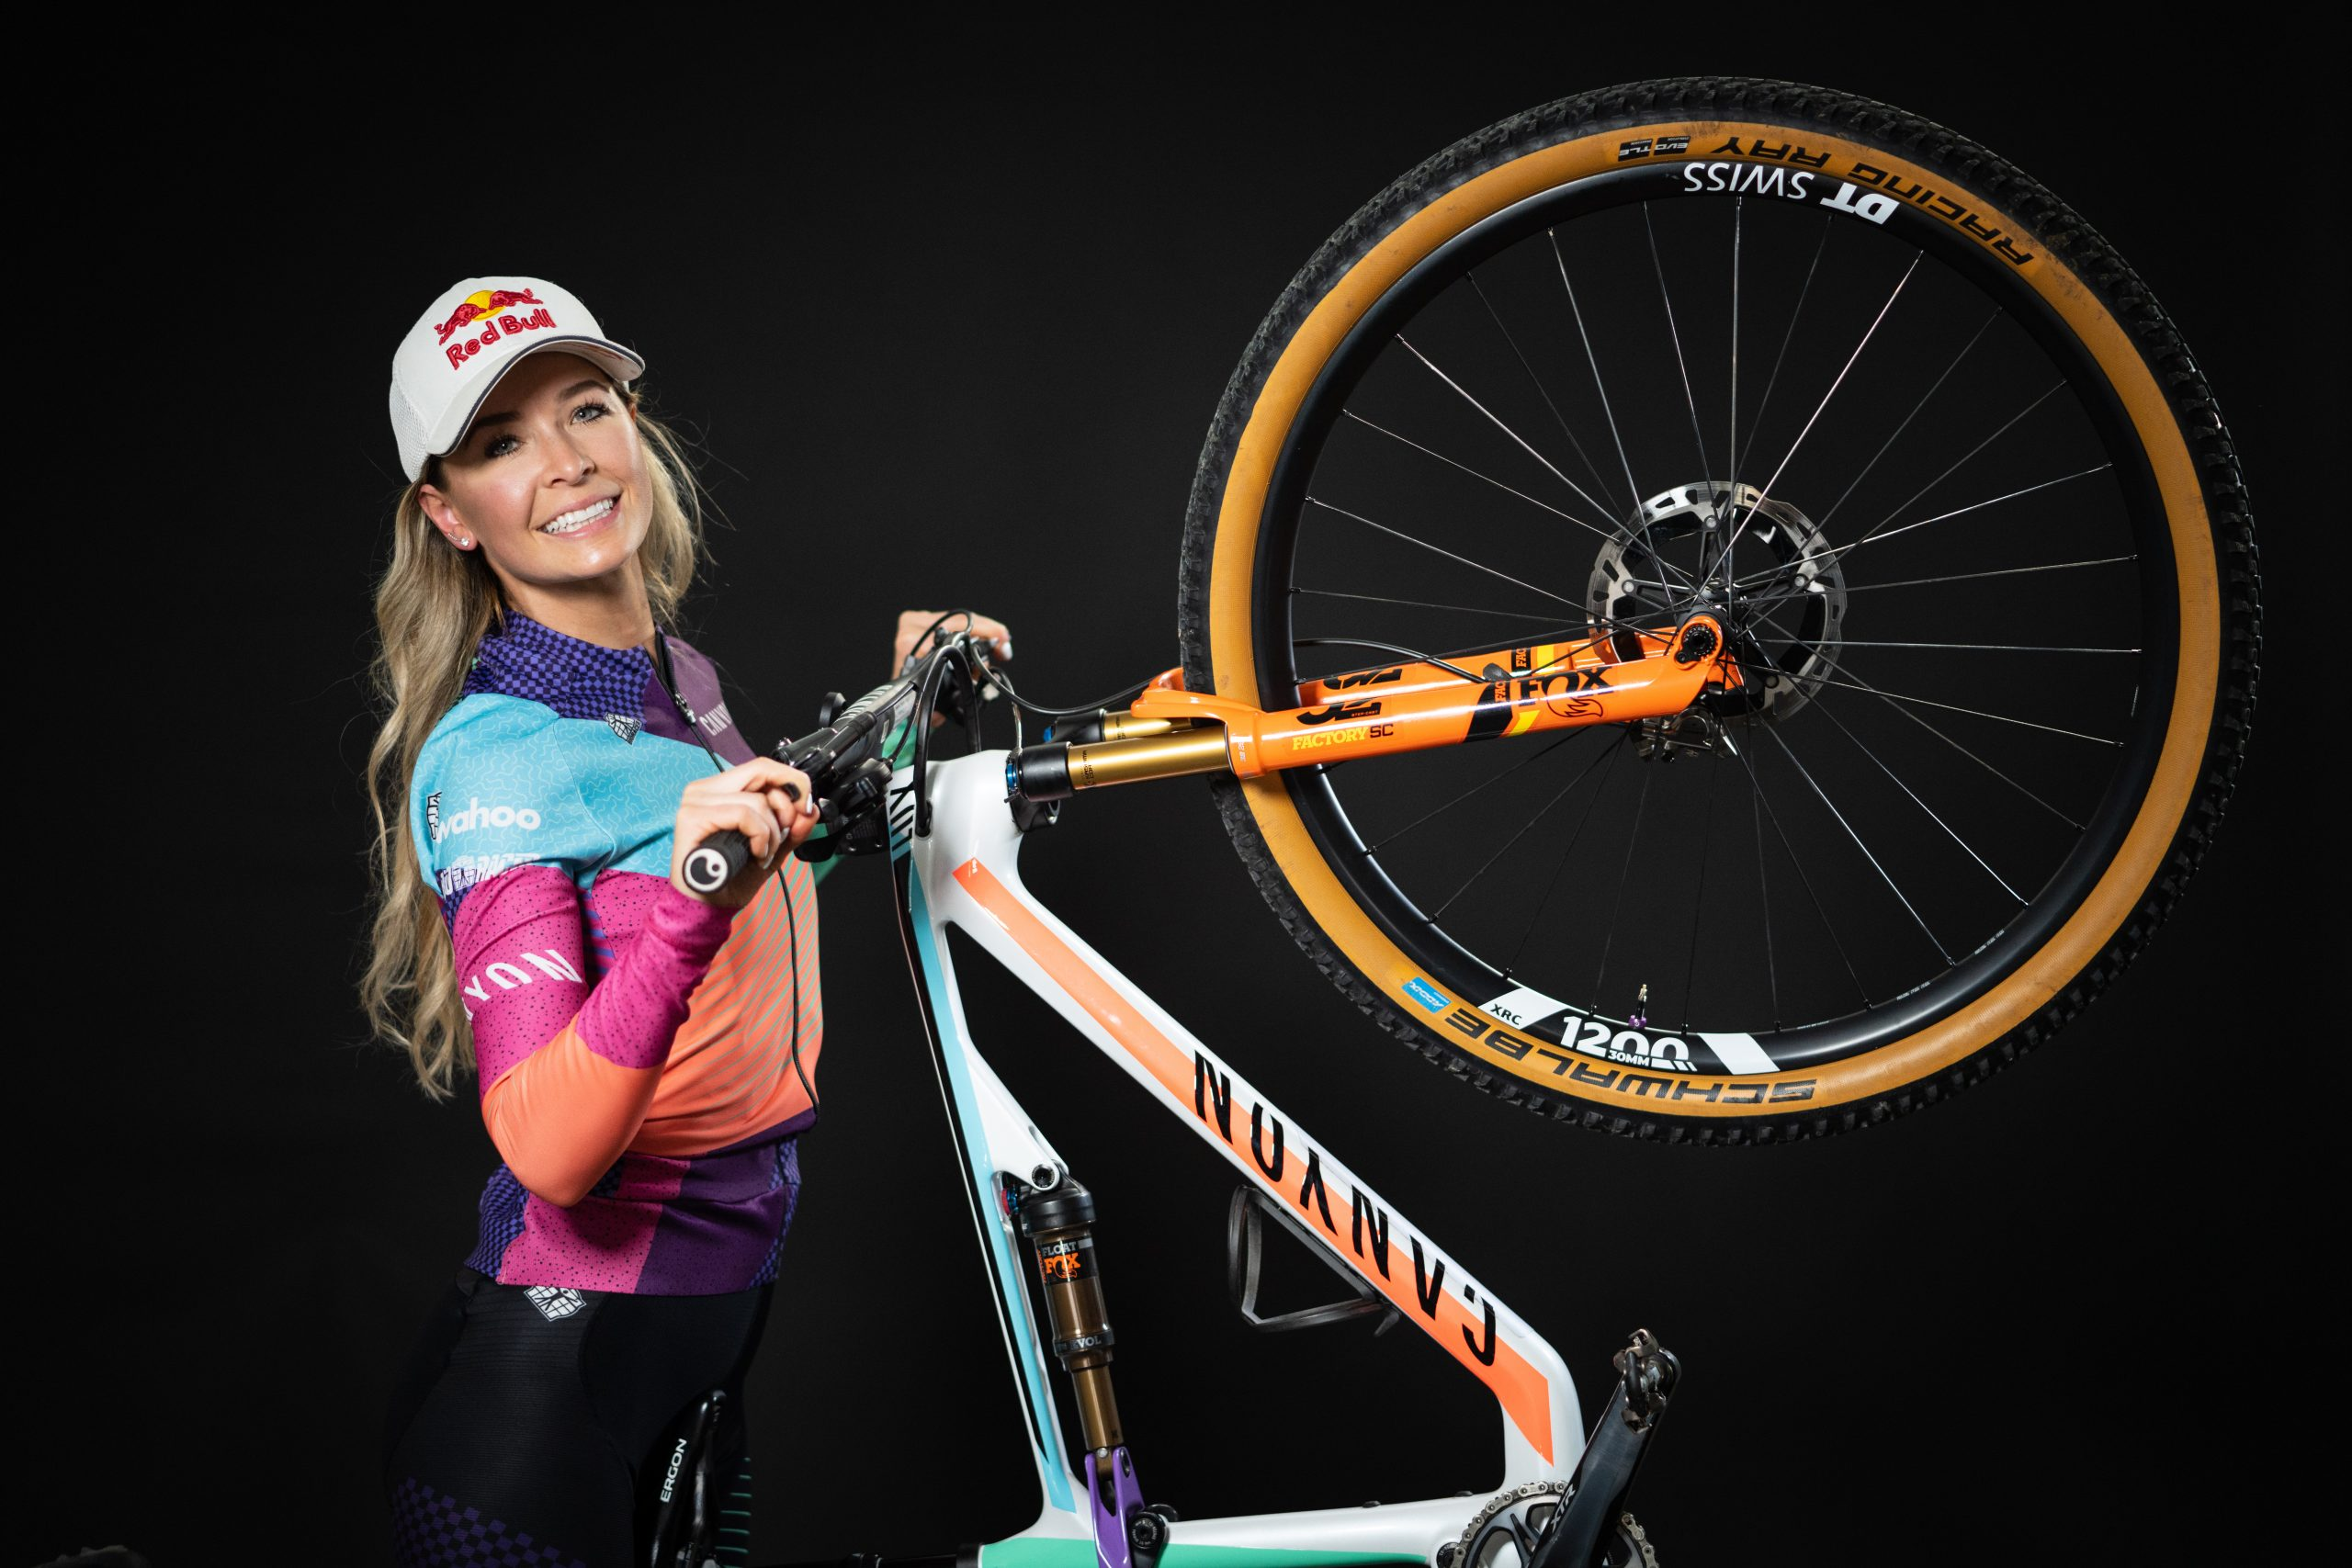 Emily Batty's New Home, Canyon MTB Racing, Launches with a World Cup Agenda